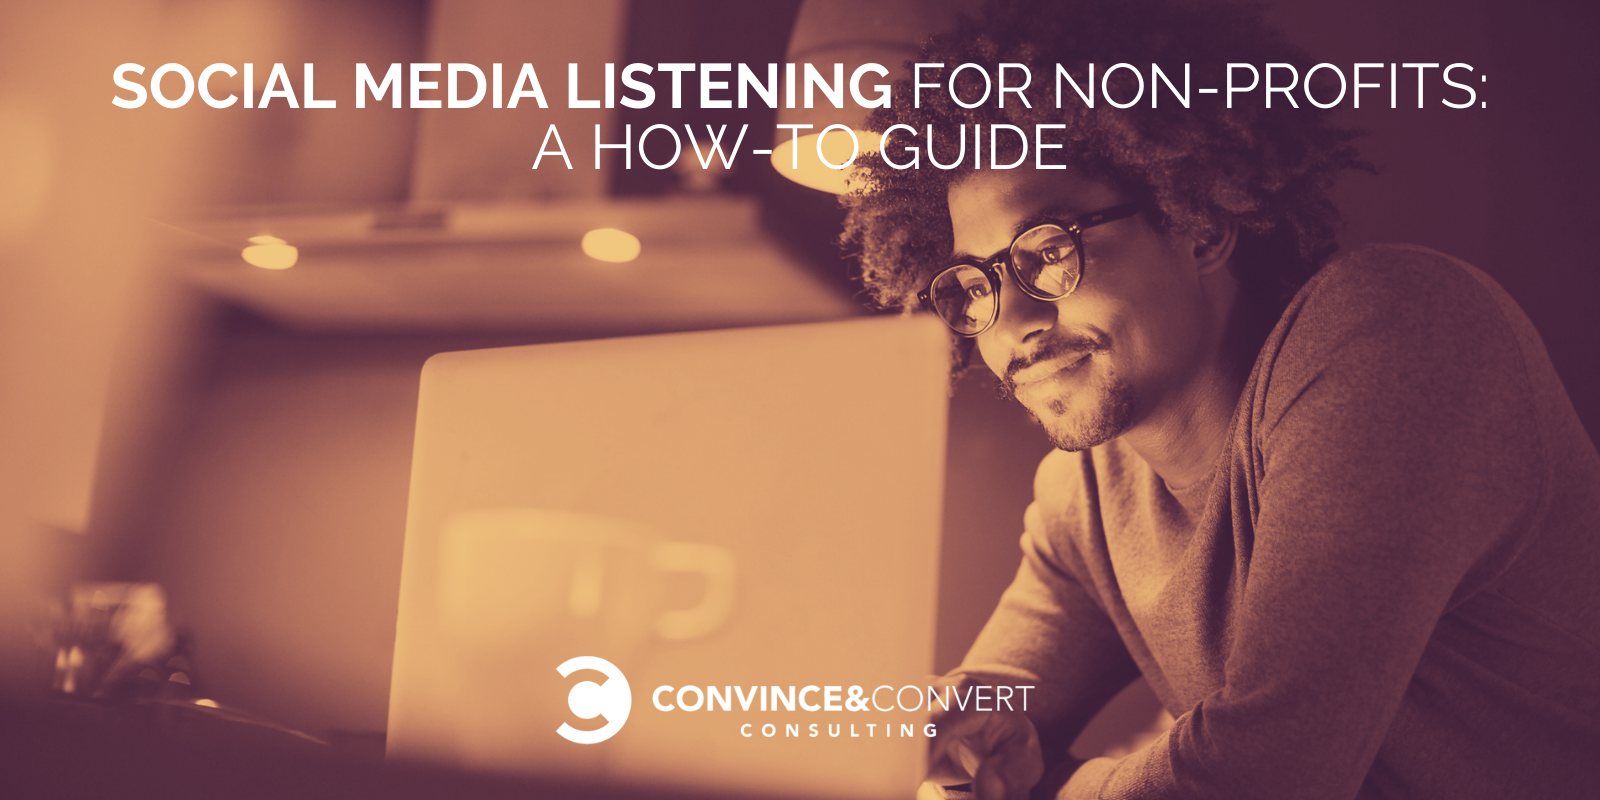 Social Media Listening for Non-Profits: A How-To E-book : Dispute Marketing Consulting and Social Media Approach